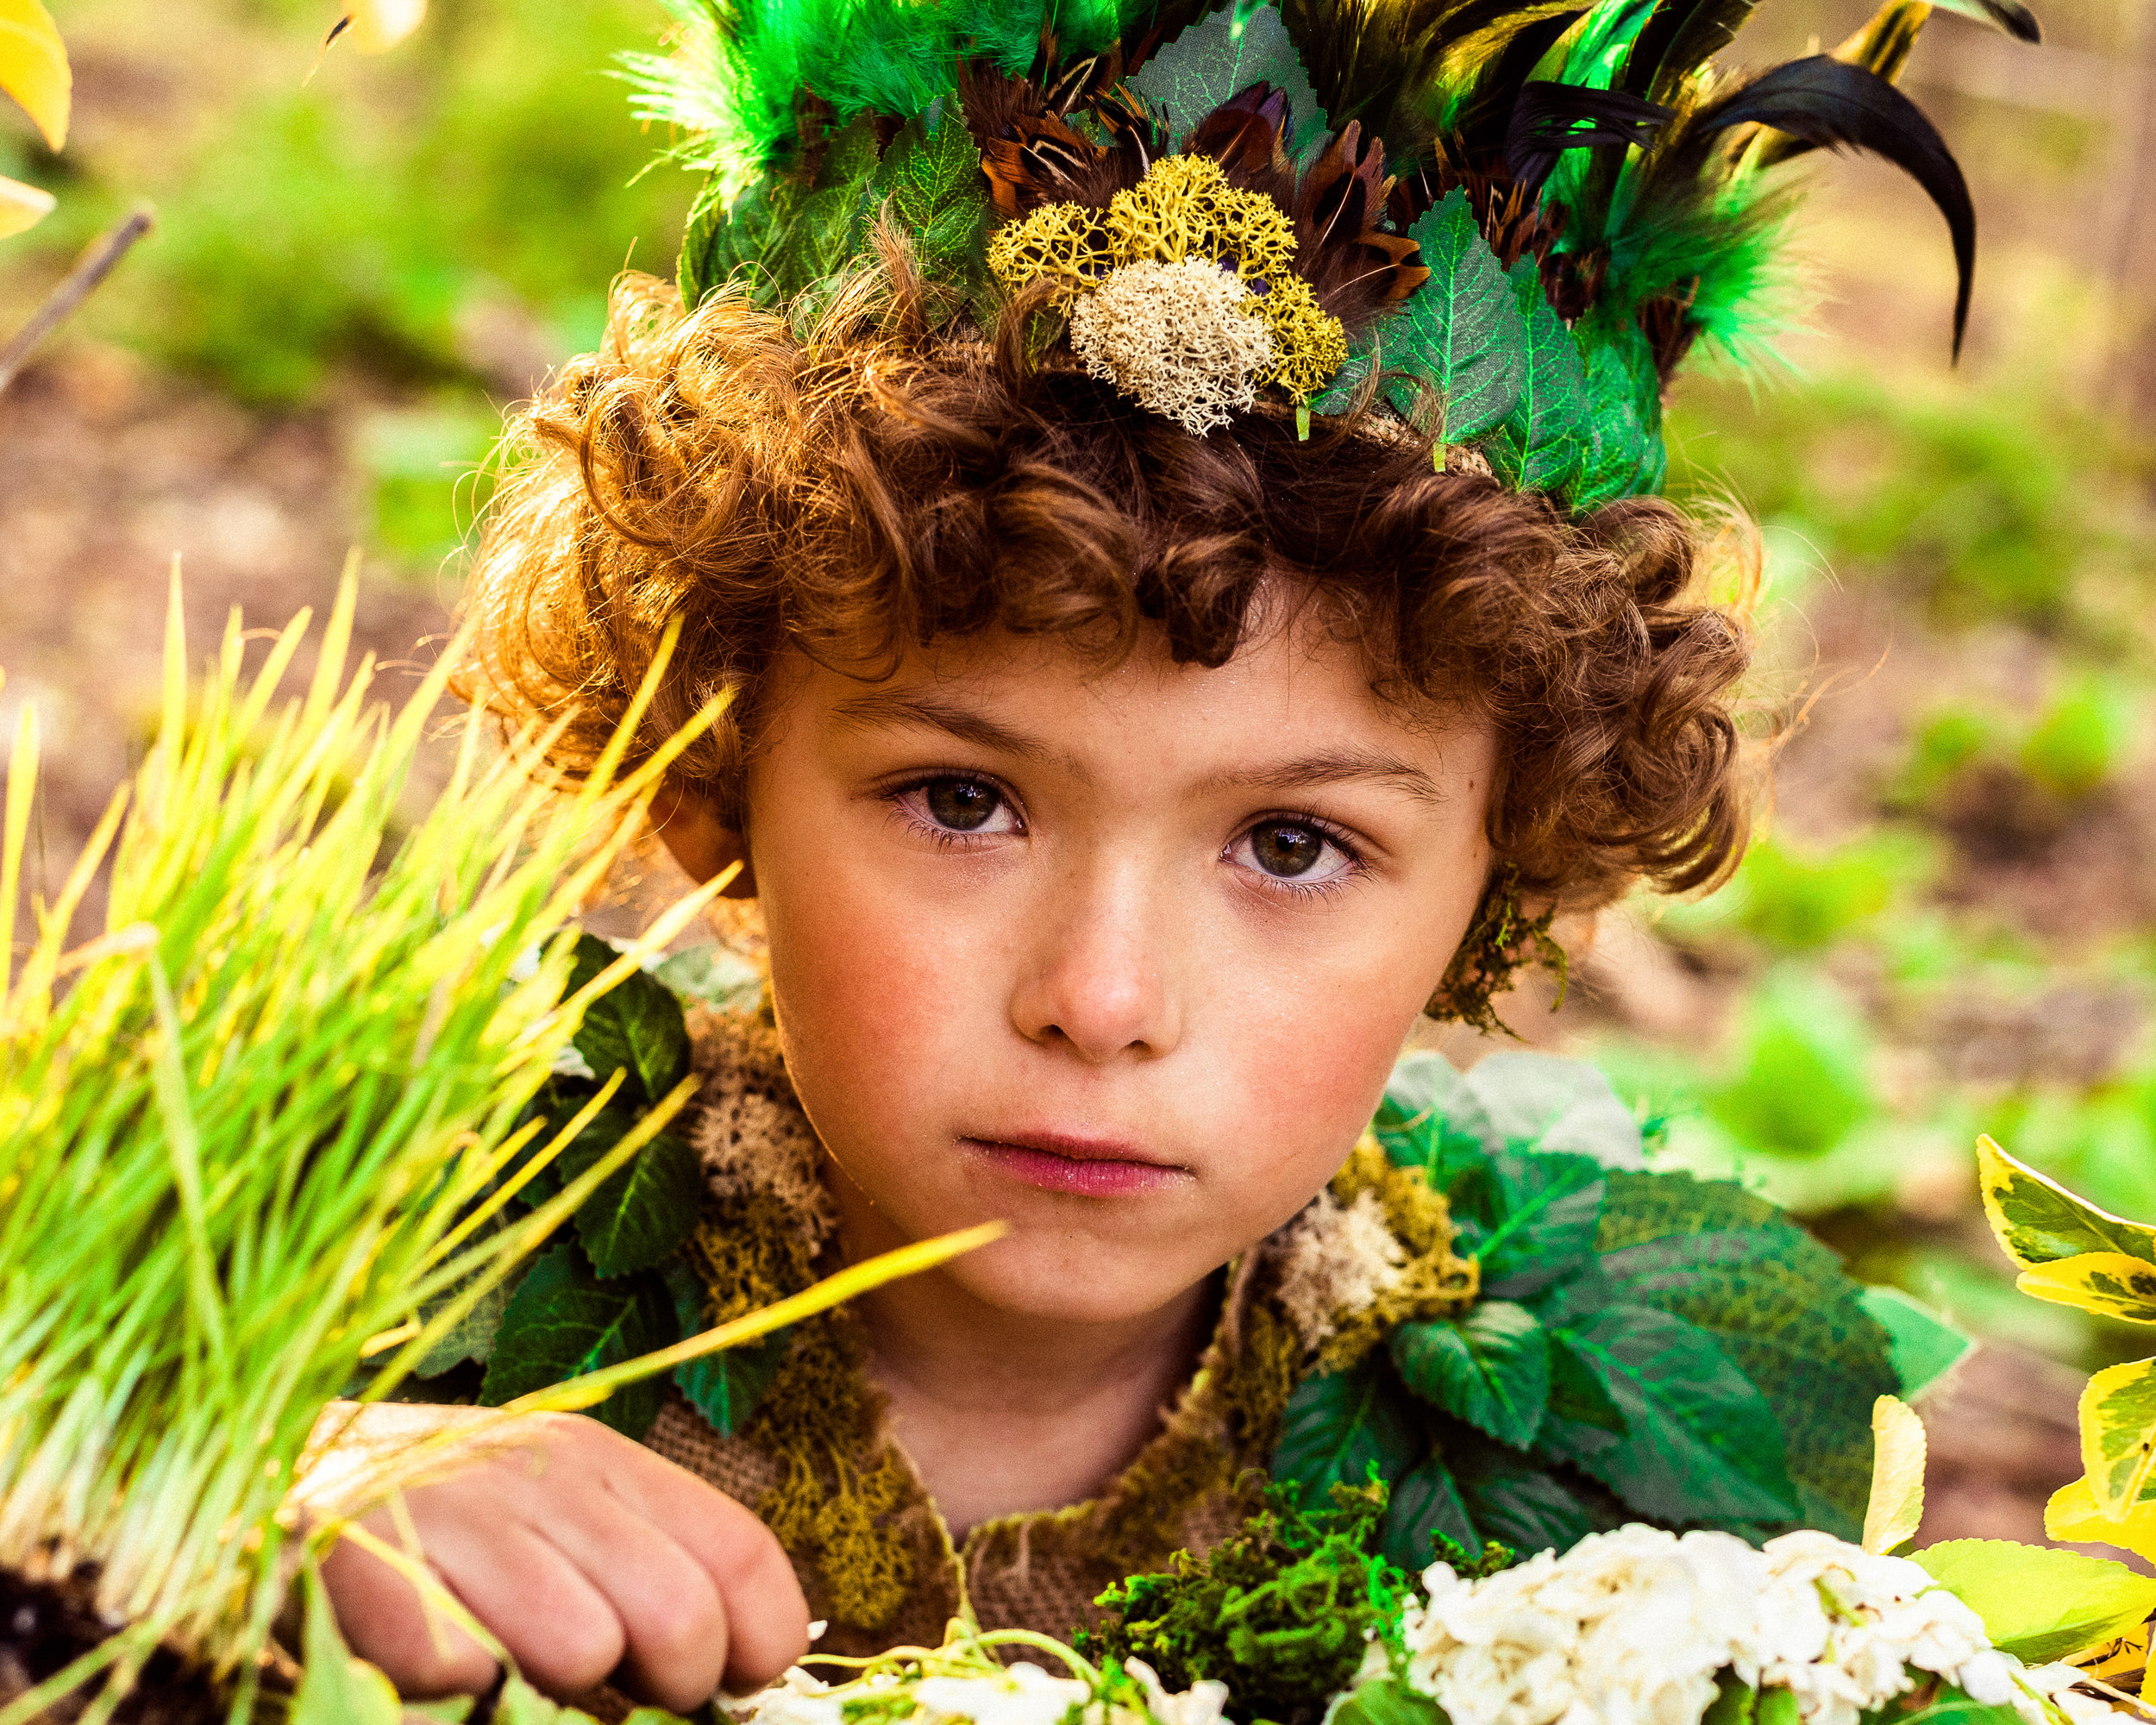 Feathers & Leaves Fairy-19.jpg